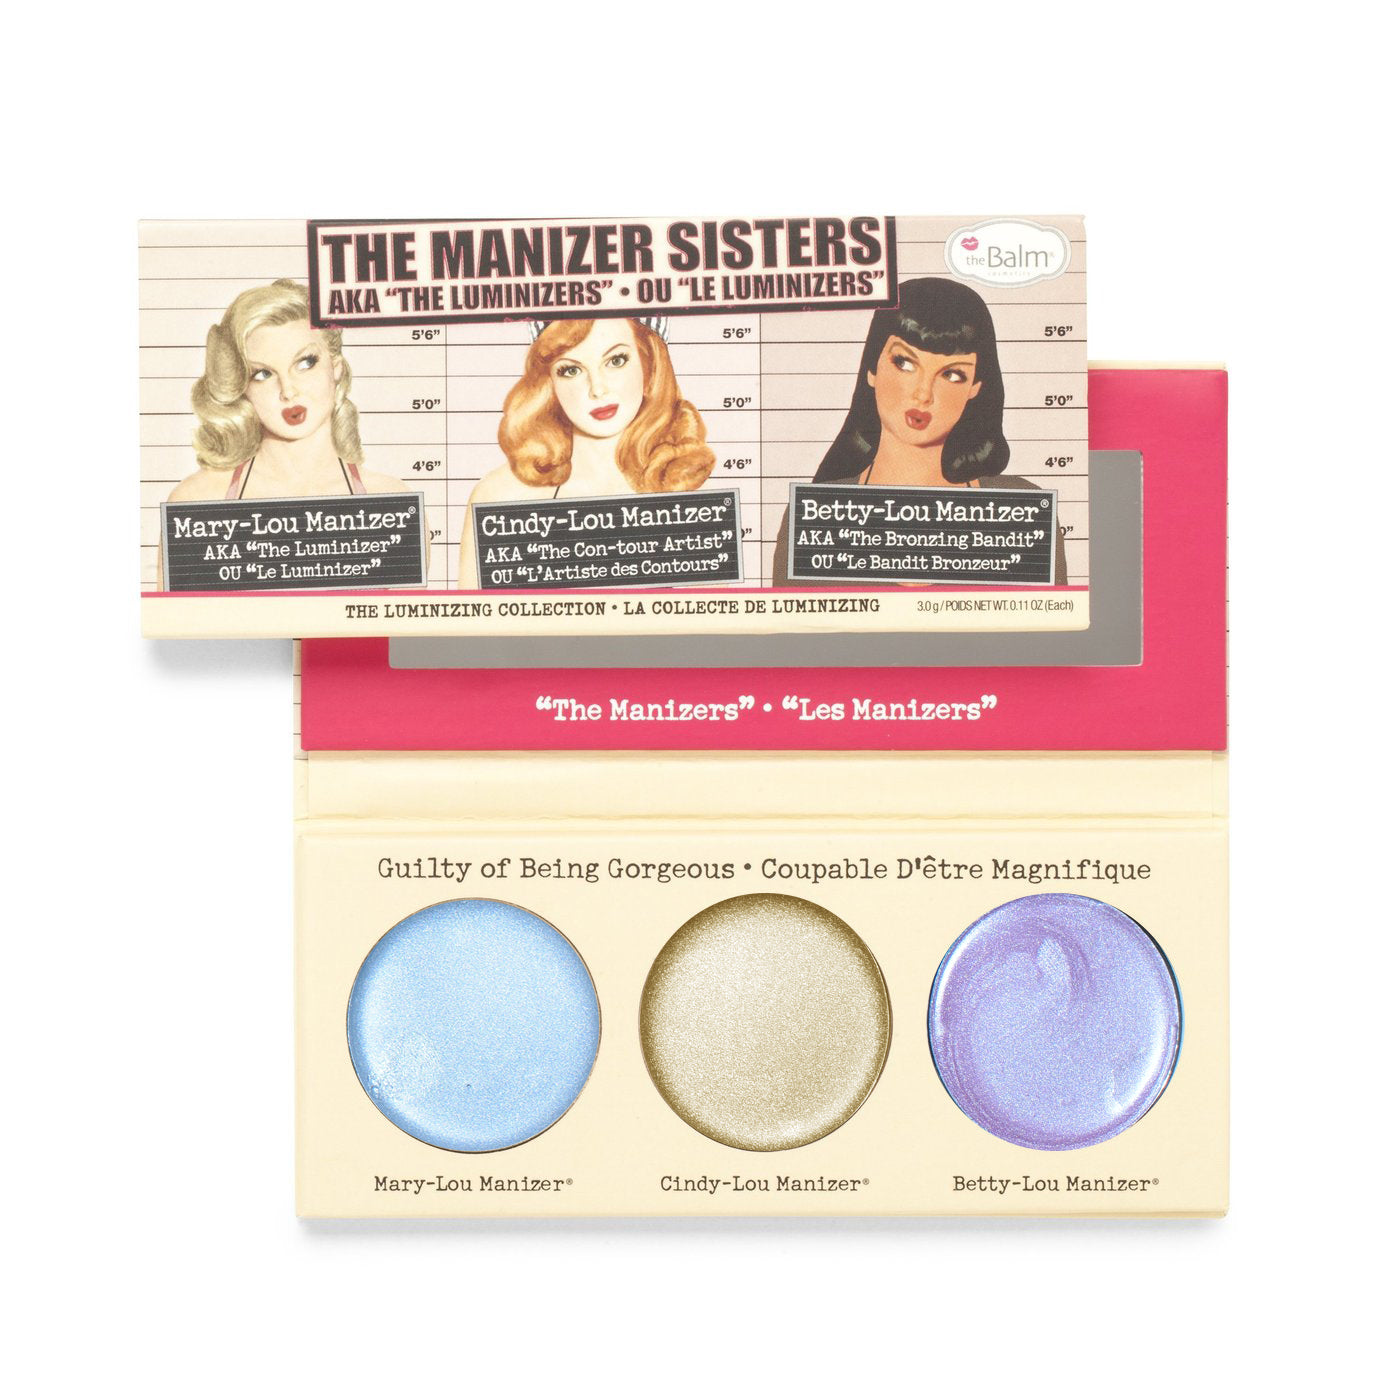 Heart Balm THE MANIZER SISTERS Luminizers-NA7052